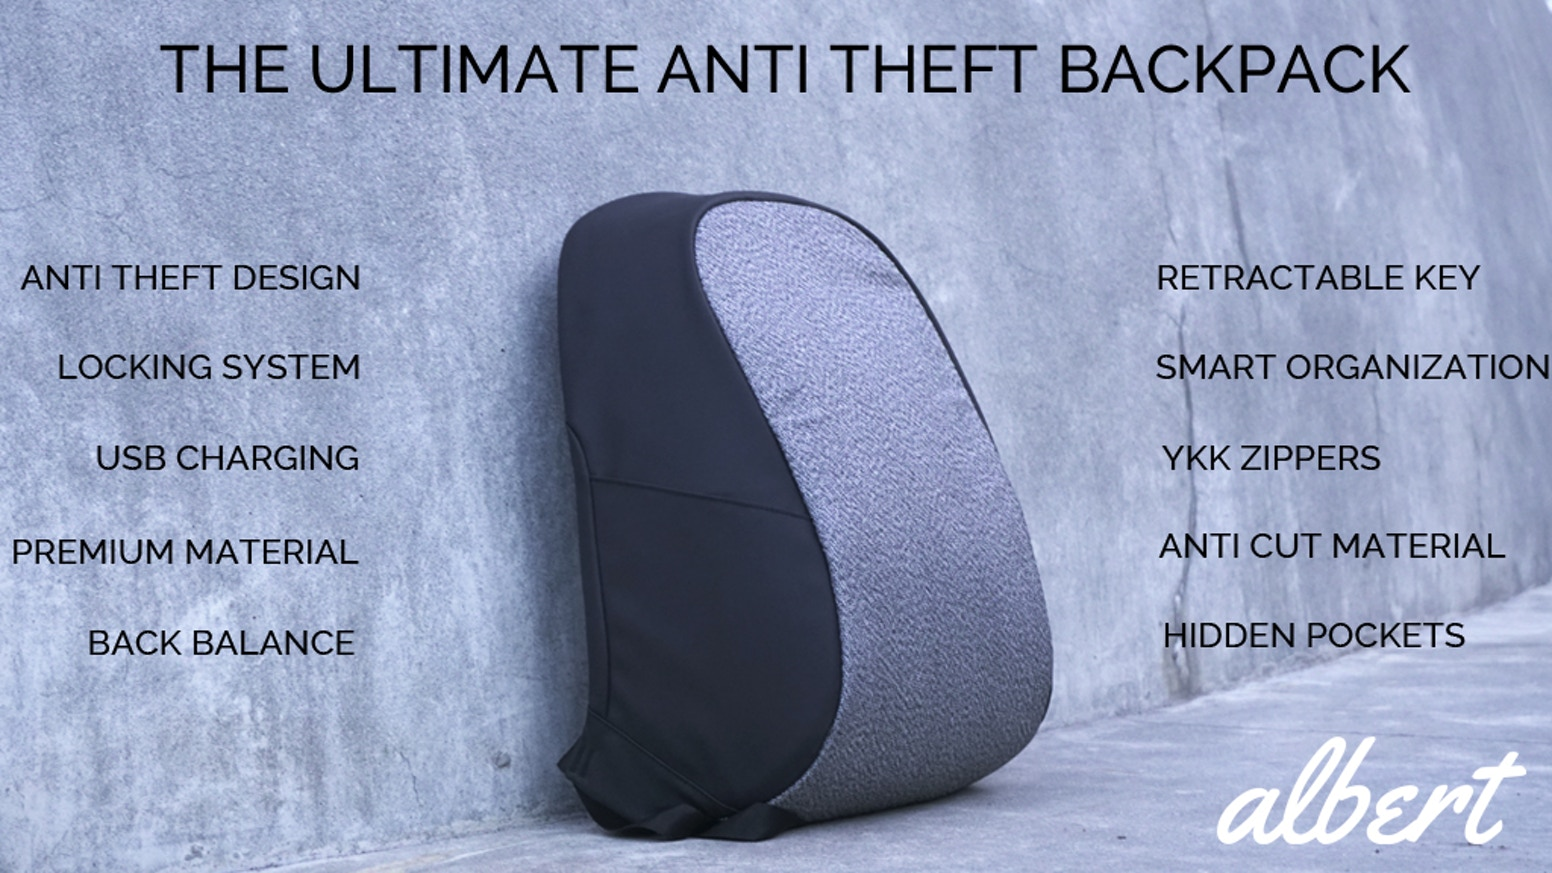 Hidden Zippers and Retractable Lock makes this bag one of the most functional everyday backpacks on the market!